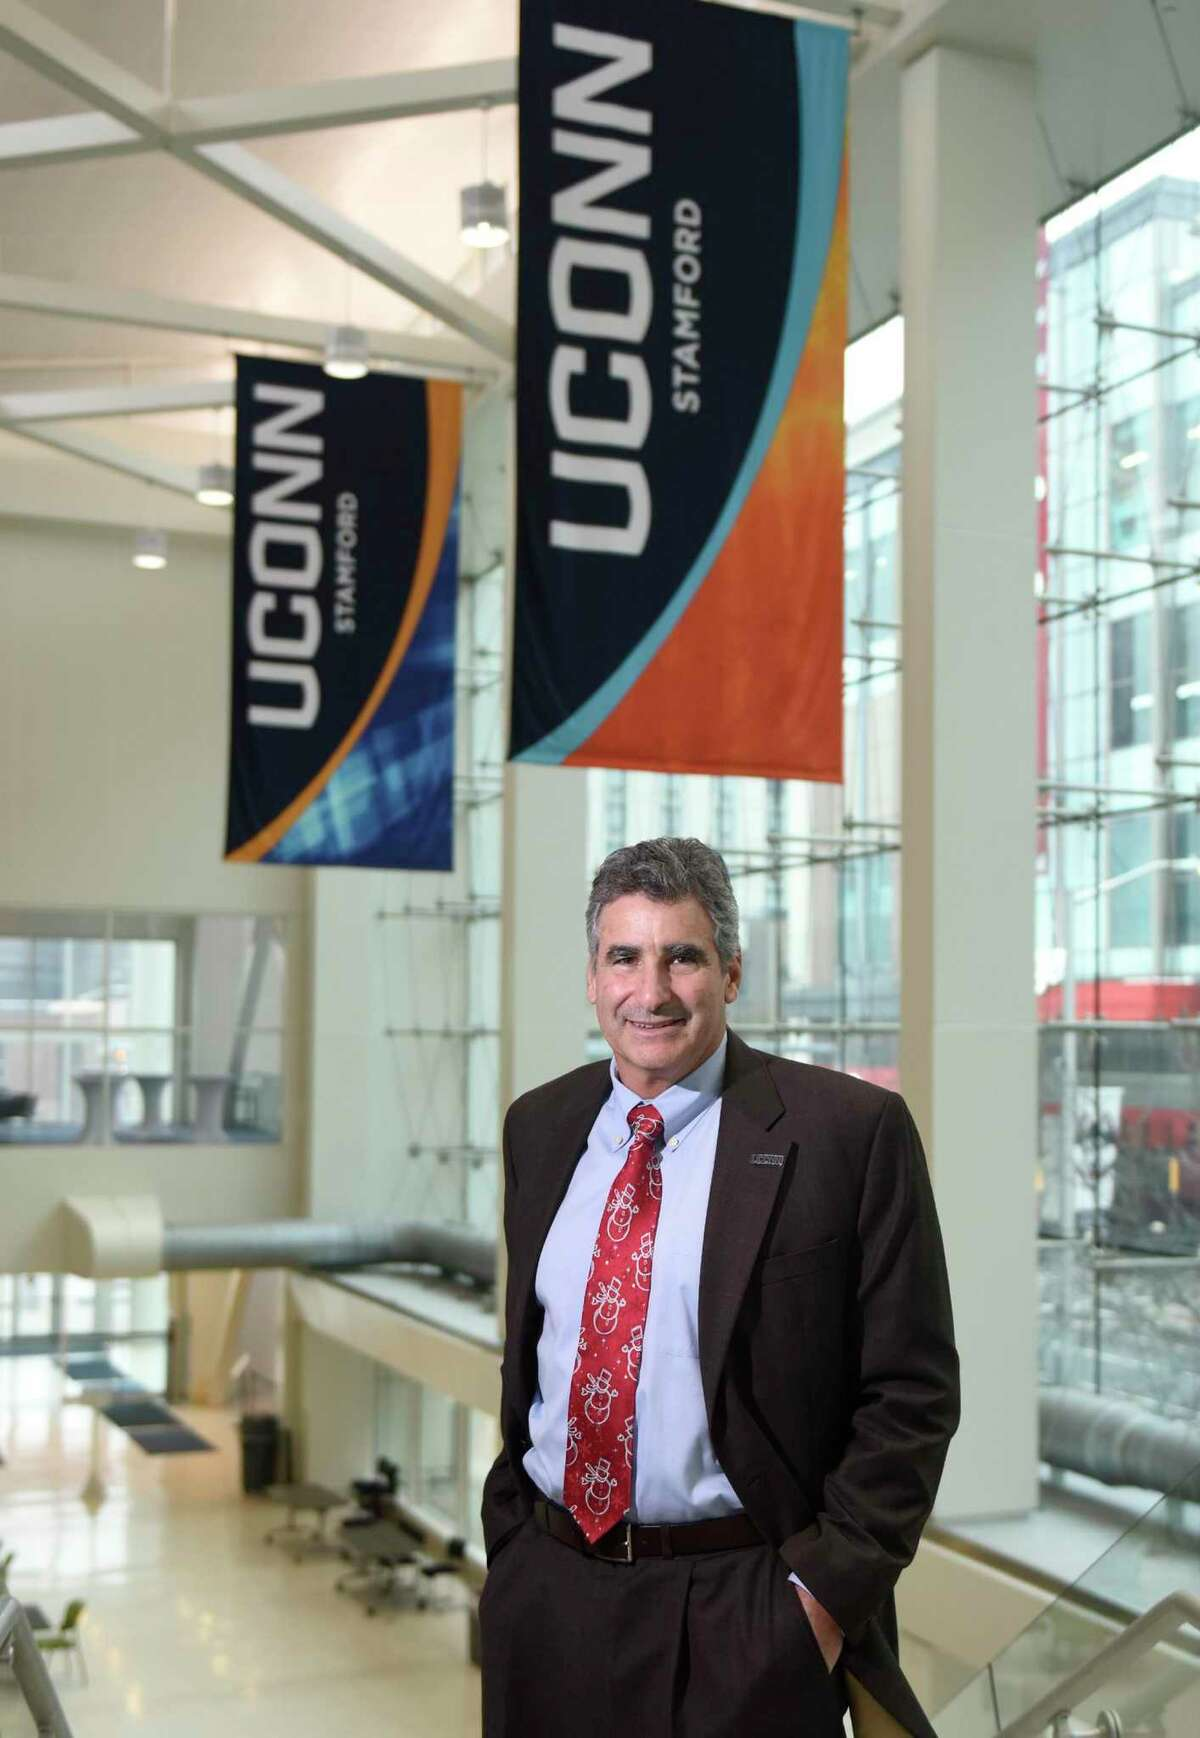 University of Connecticut President Thomas C. Katsouleas poses at the UConn Stamford branch in Stamford, Conn. Monday, Dec. 16, 2019. Katsouleas began his role as the 16th President of the University in August of 2019. Prior to coming to UConn, he was the executive vice president and provost at University of Virginia. Katsouleas has a Ph.D. in Physics from UCLA and is a leading scholar in the field of plasma science having authored or co-authored more than 250 publications.